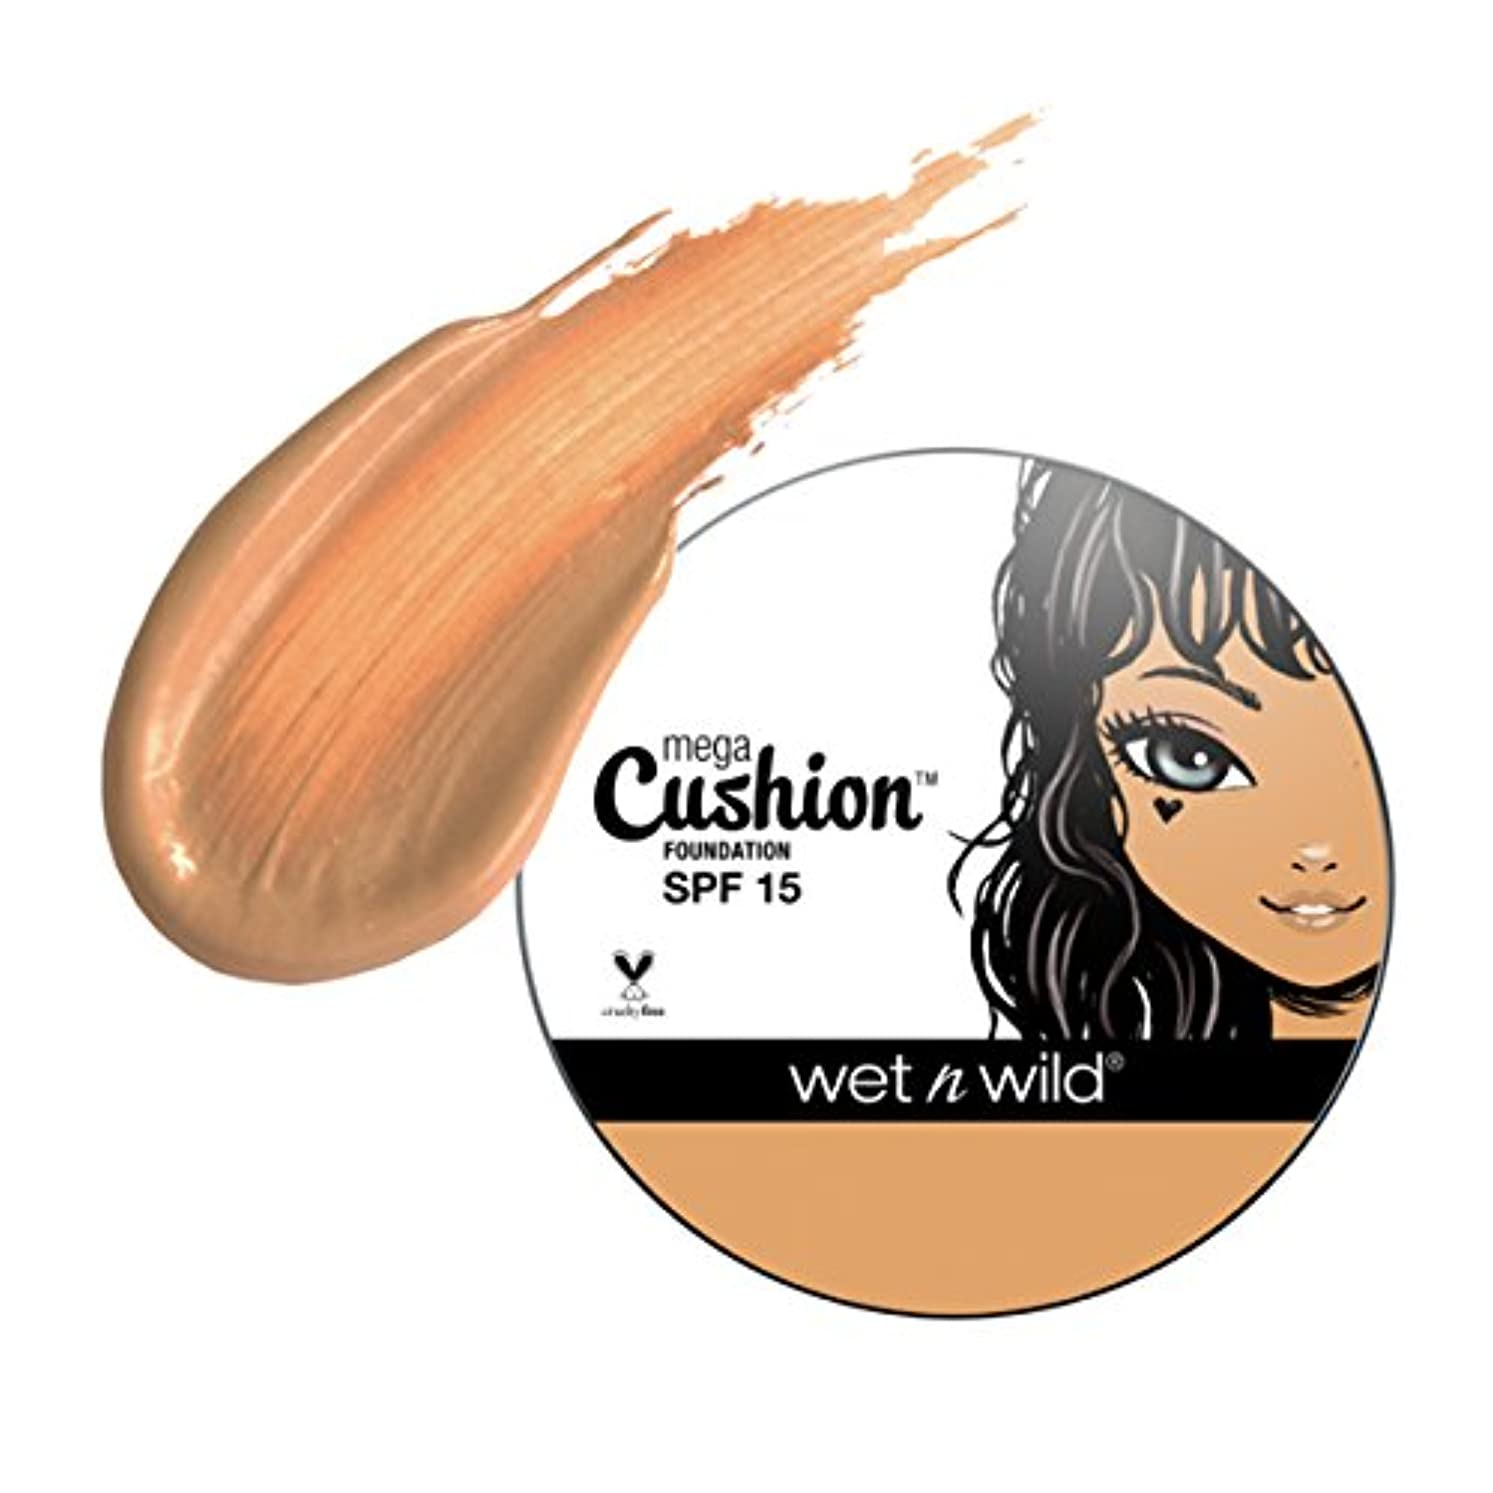 トランザクション欺後方に(6 Pack) WET N WILD MegaCushion Foundation SPF 15 - Honey Beige (並行輸入品)